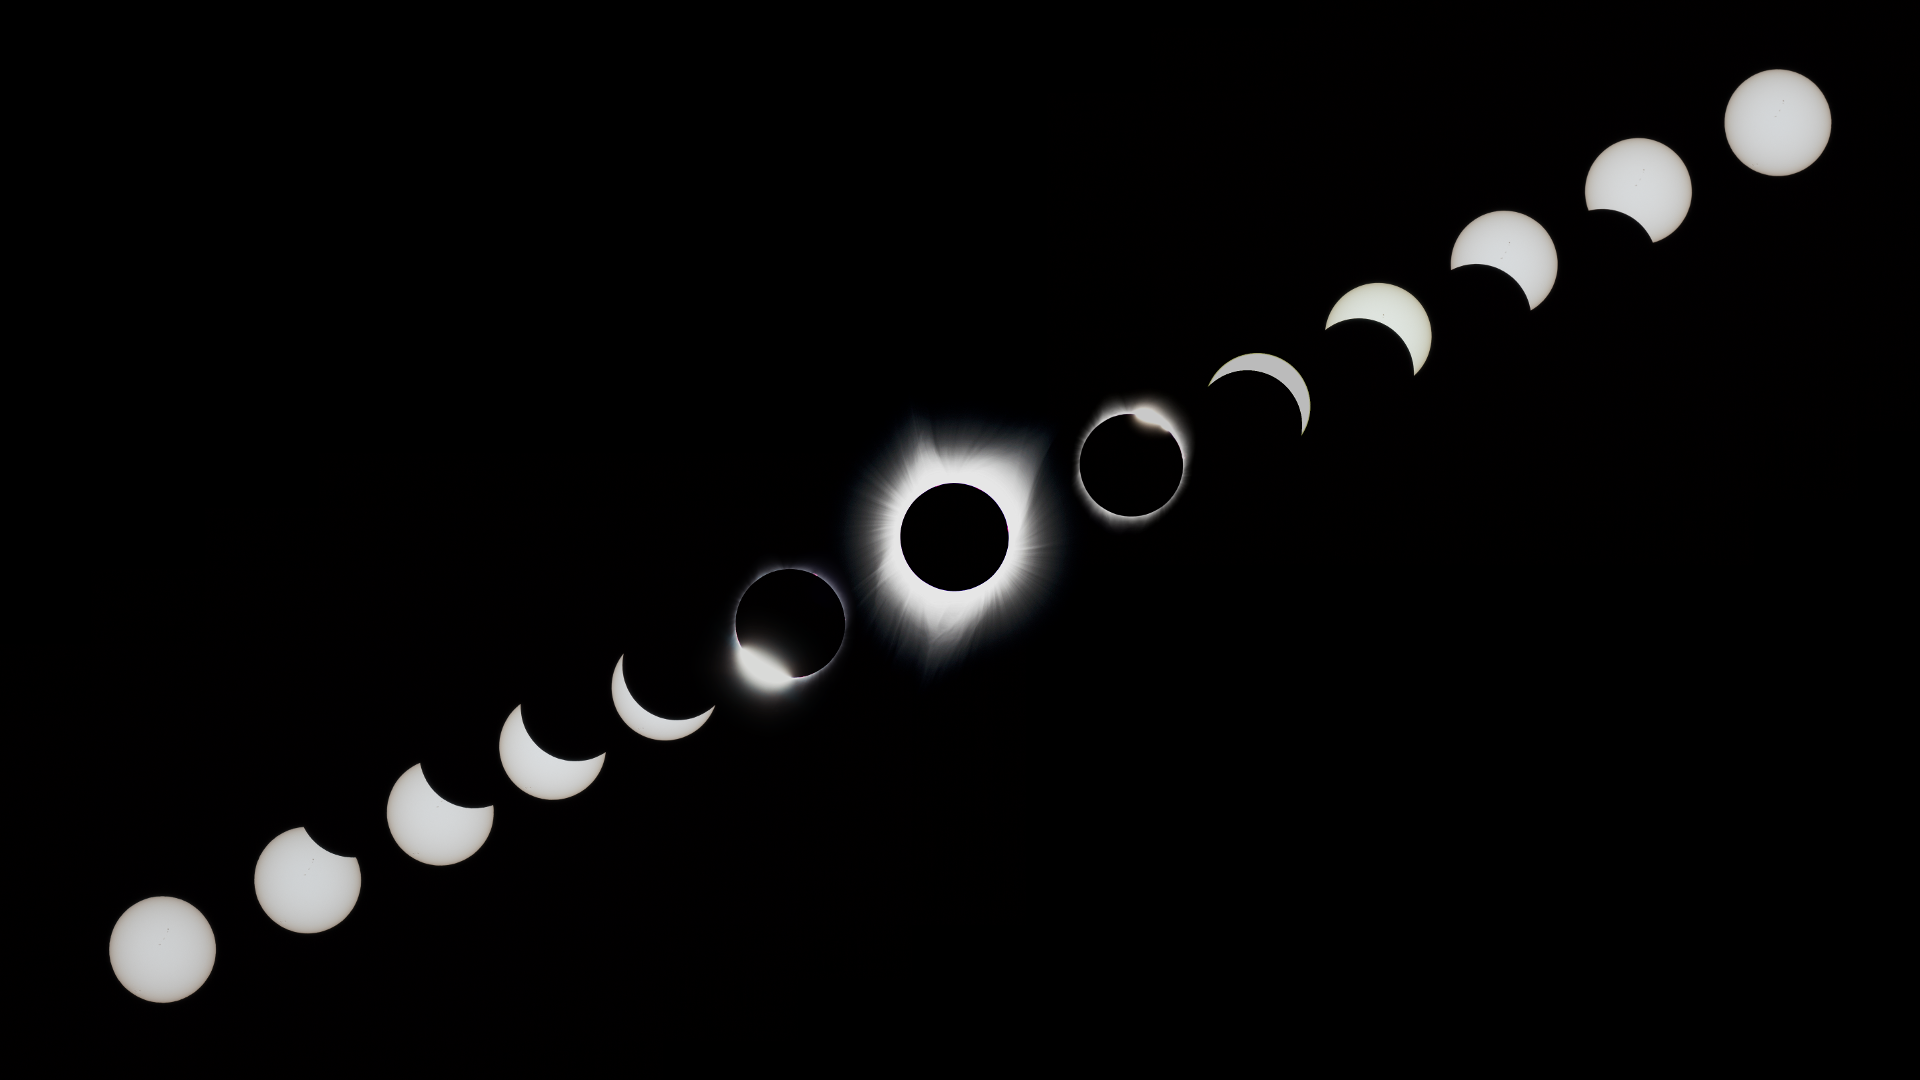 http://www.shakemid.com/pub/total_solar_eclipse_wall2_1920.png